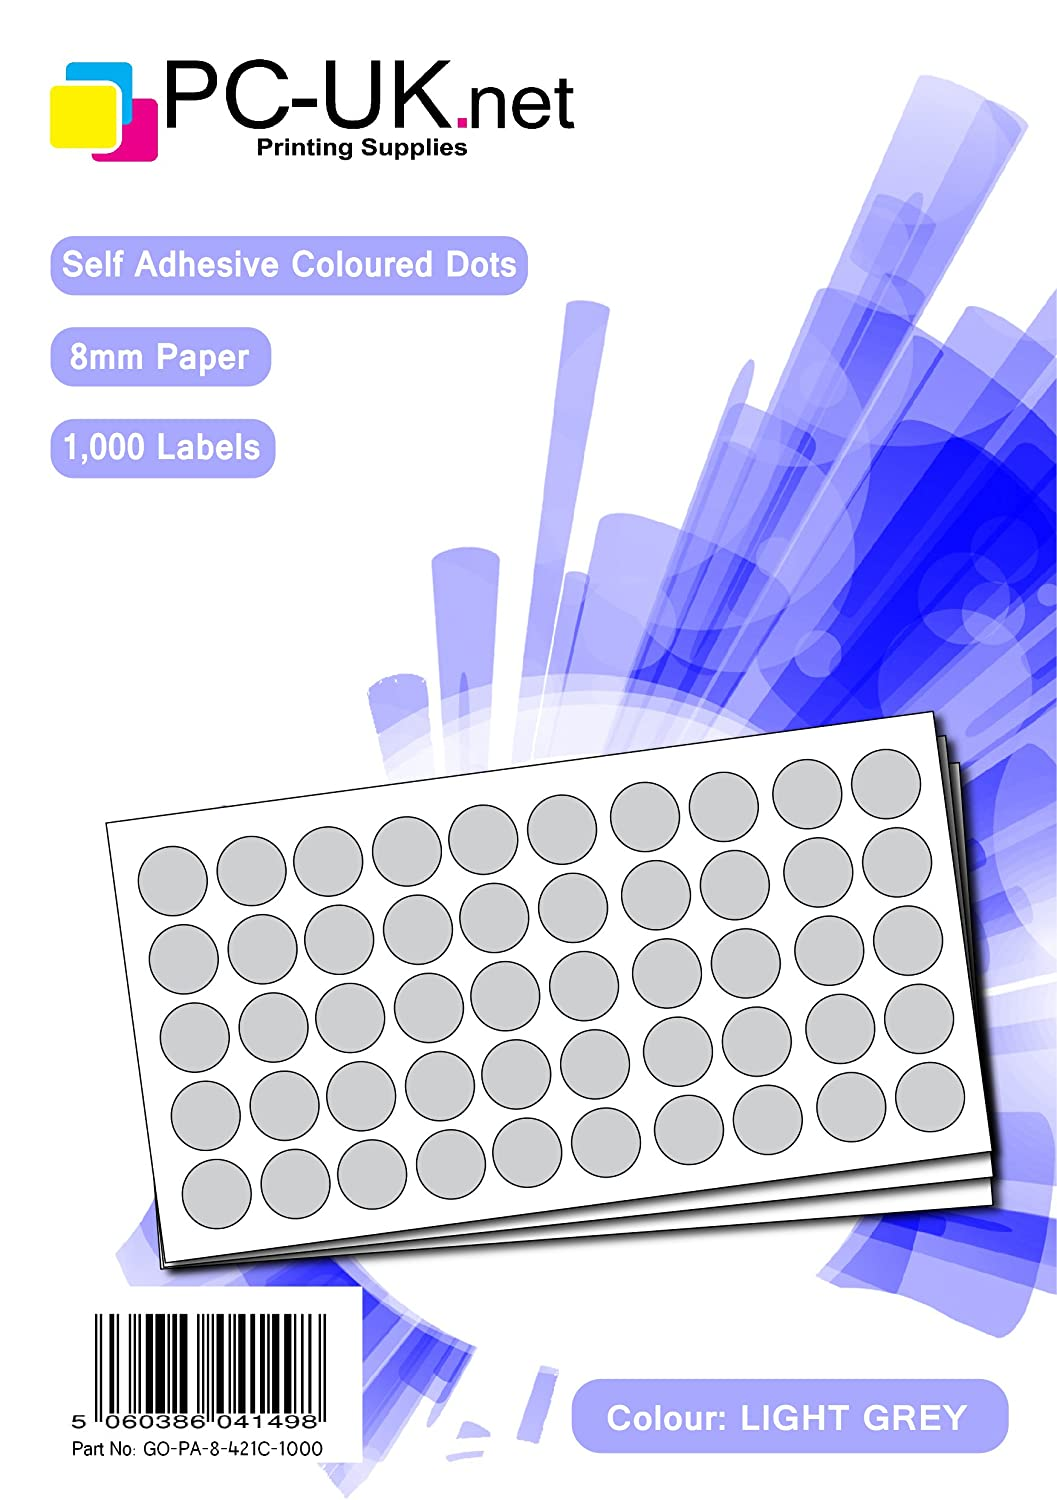 Light Grey 1000 Coloured Dots 8mm Self Adhesive Spots Round Colour Labels Sticky Dot Paper